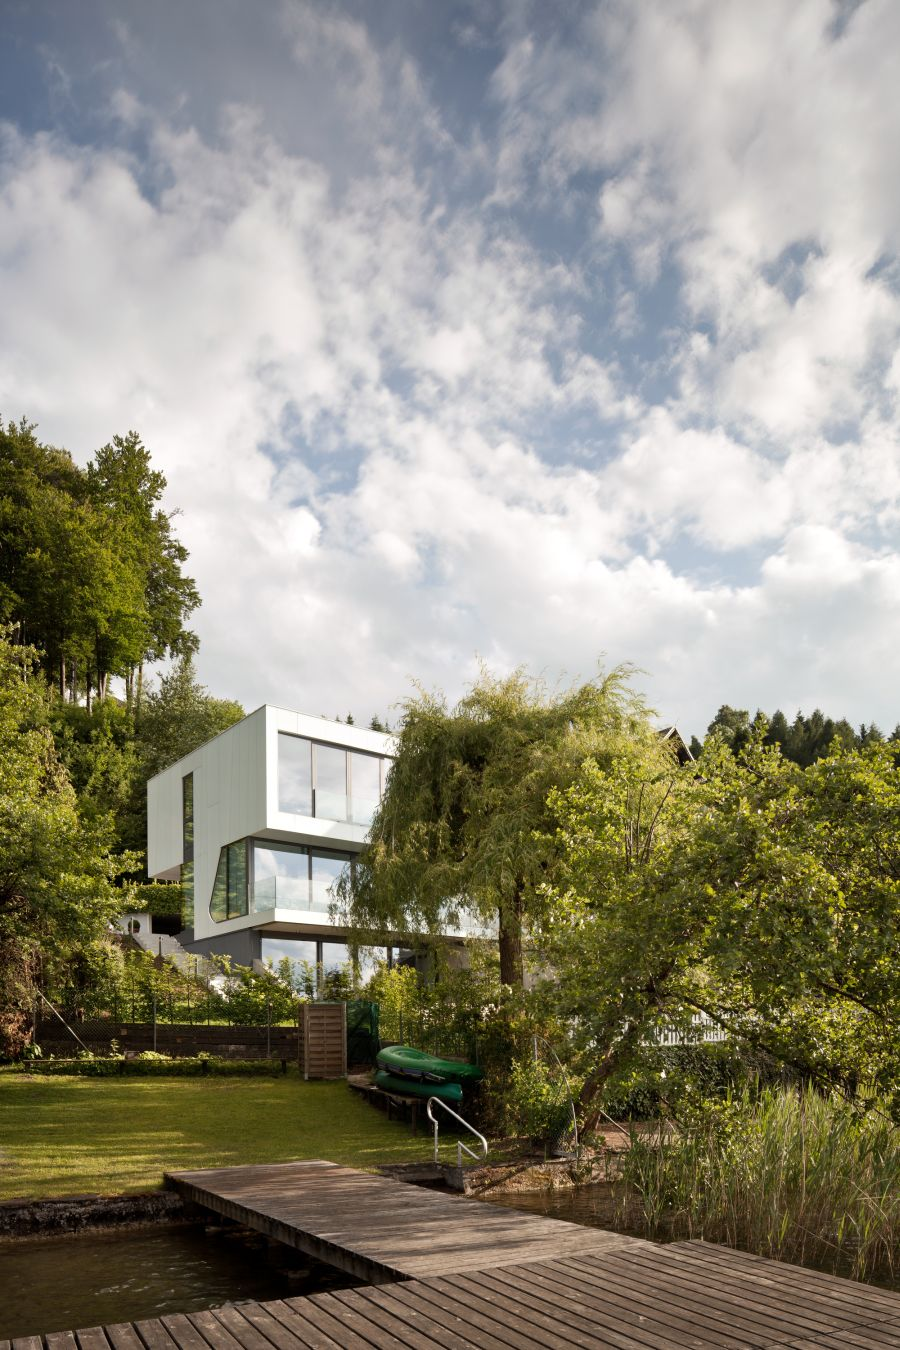 Greenery surrounding the Lakehouse